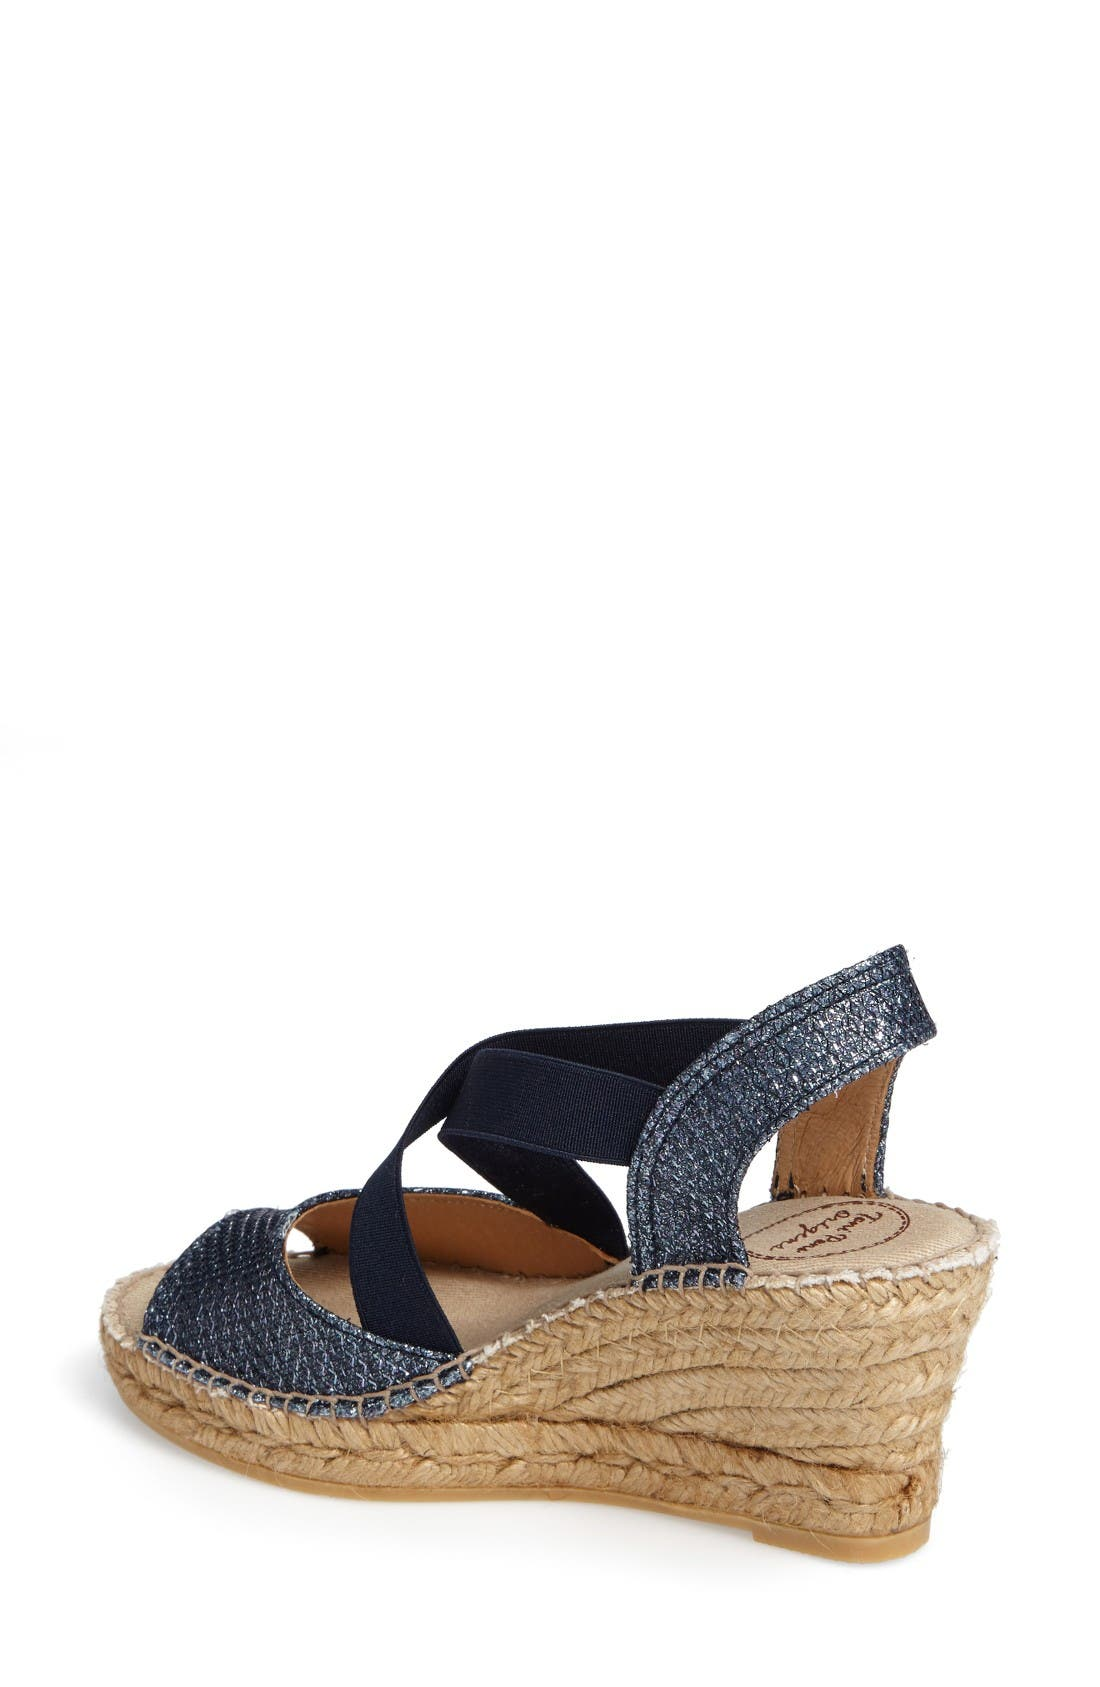 Sol Wedge Espadrille Sandal,                             Alternate thumbnail 2, color,                             Navy Fabric